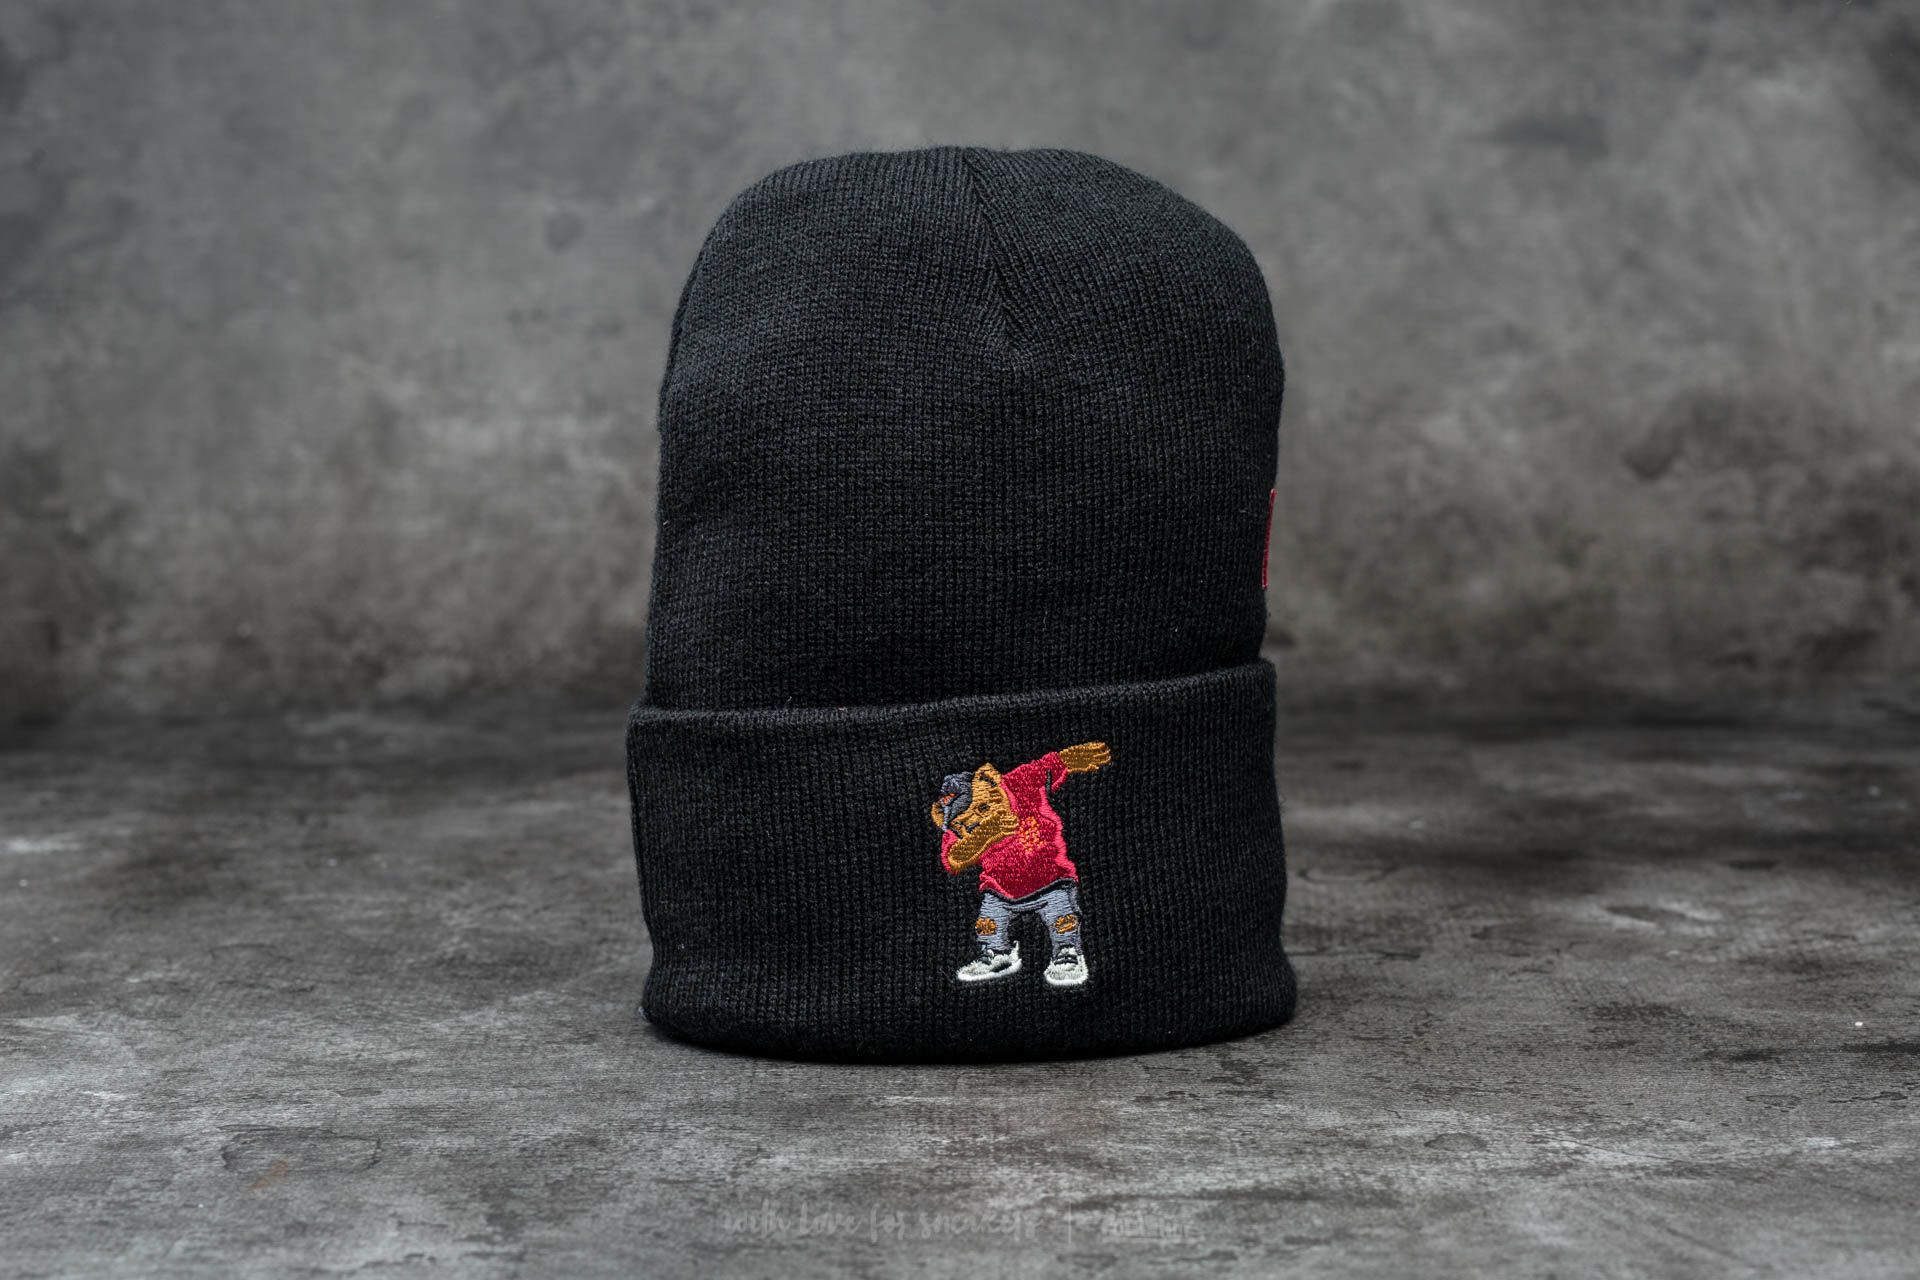 Cayler & Sons WL Dabbin' Crew Old School Beanie Black/ Multicolor - 12502